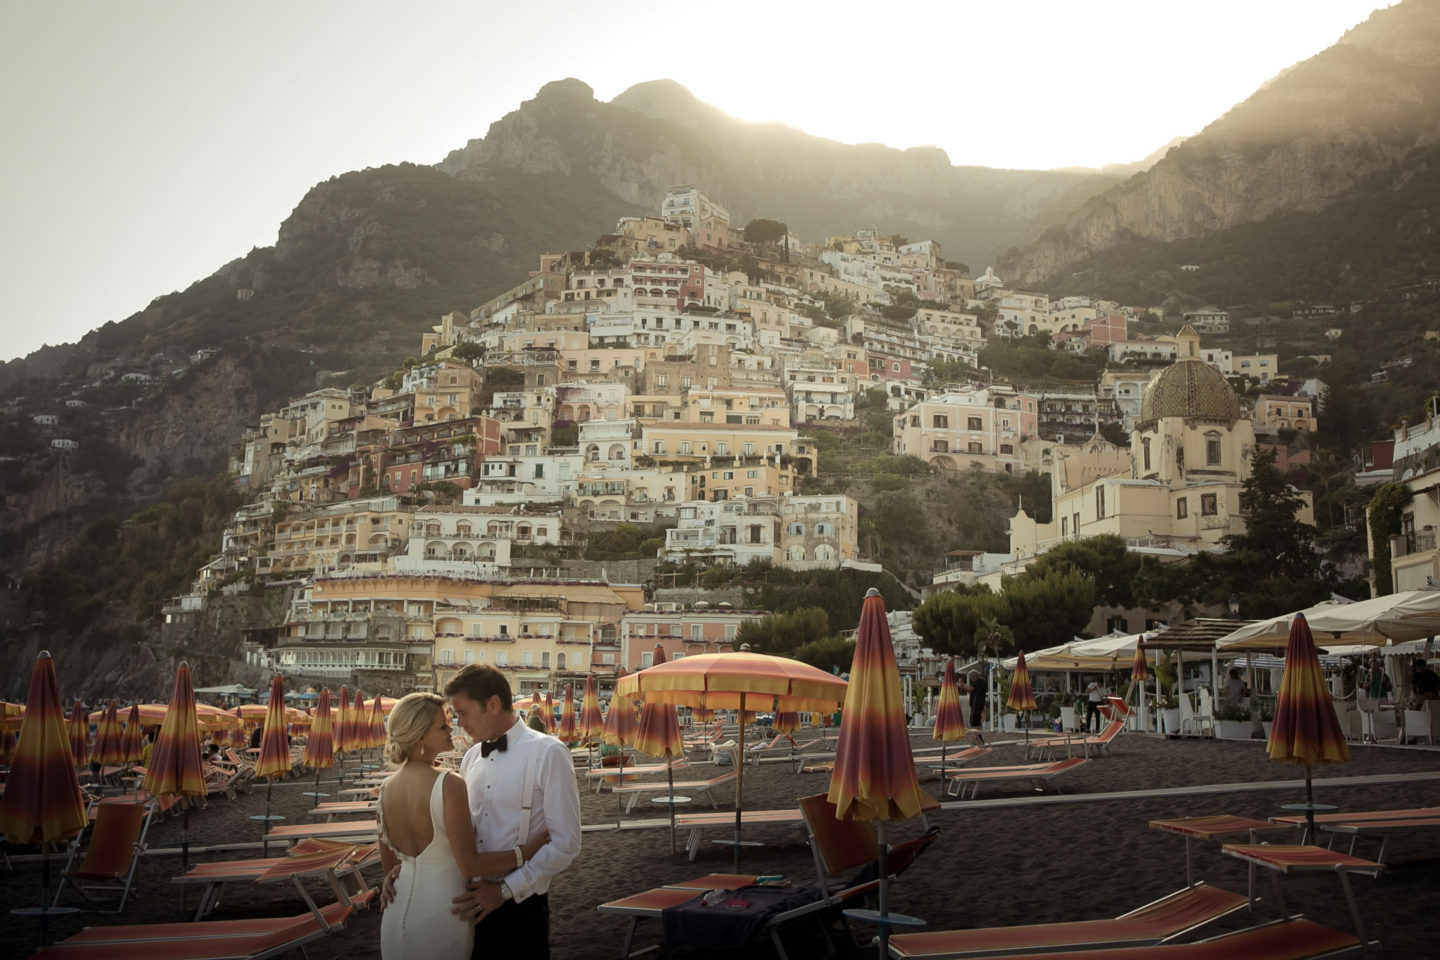 View - 48 :: Wedding in Positano. Sea and love :: Luxury wedding photography - 47 :: View - 48